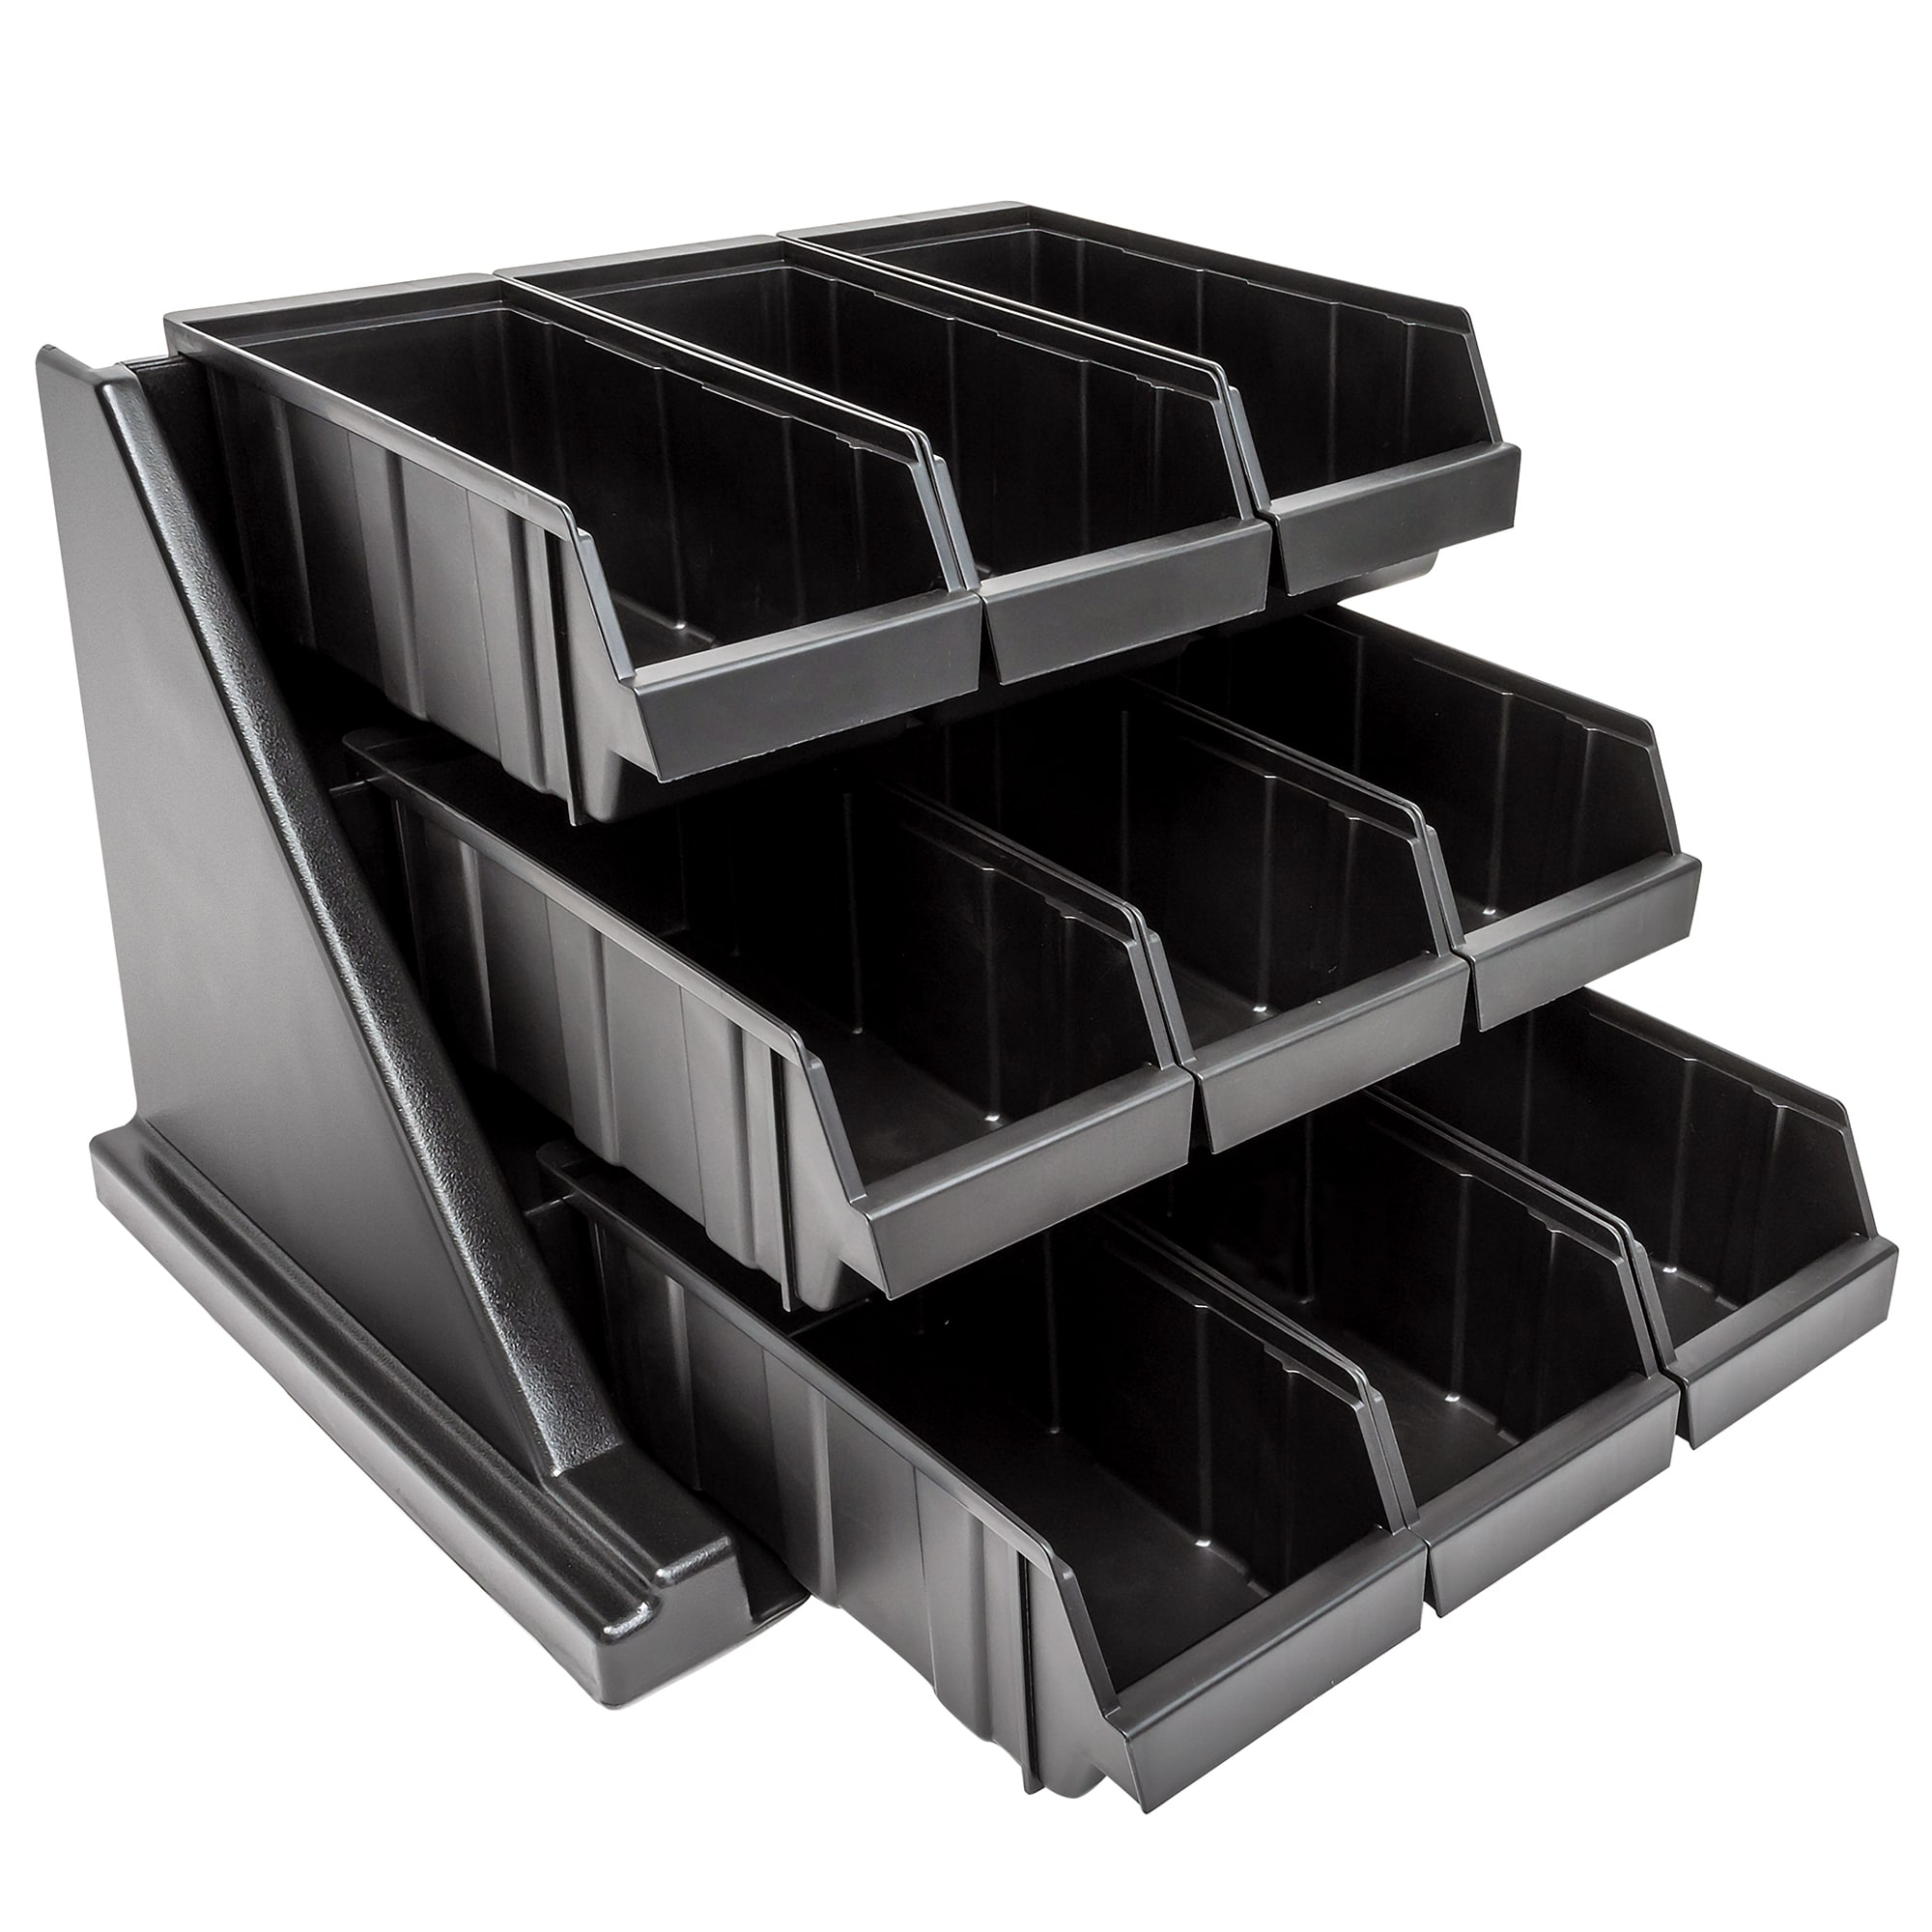 "Cambro 9RS9110 Organizer Rack - 9 Bins, 20 1/8x21 3/8x14 1/4"" Black"